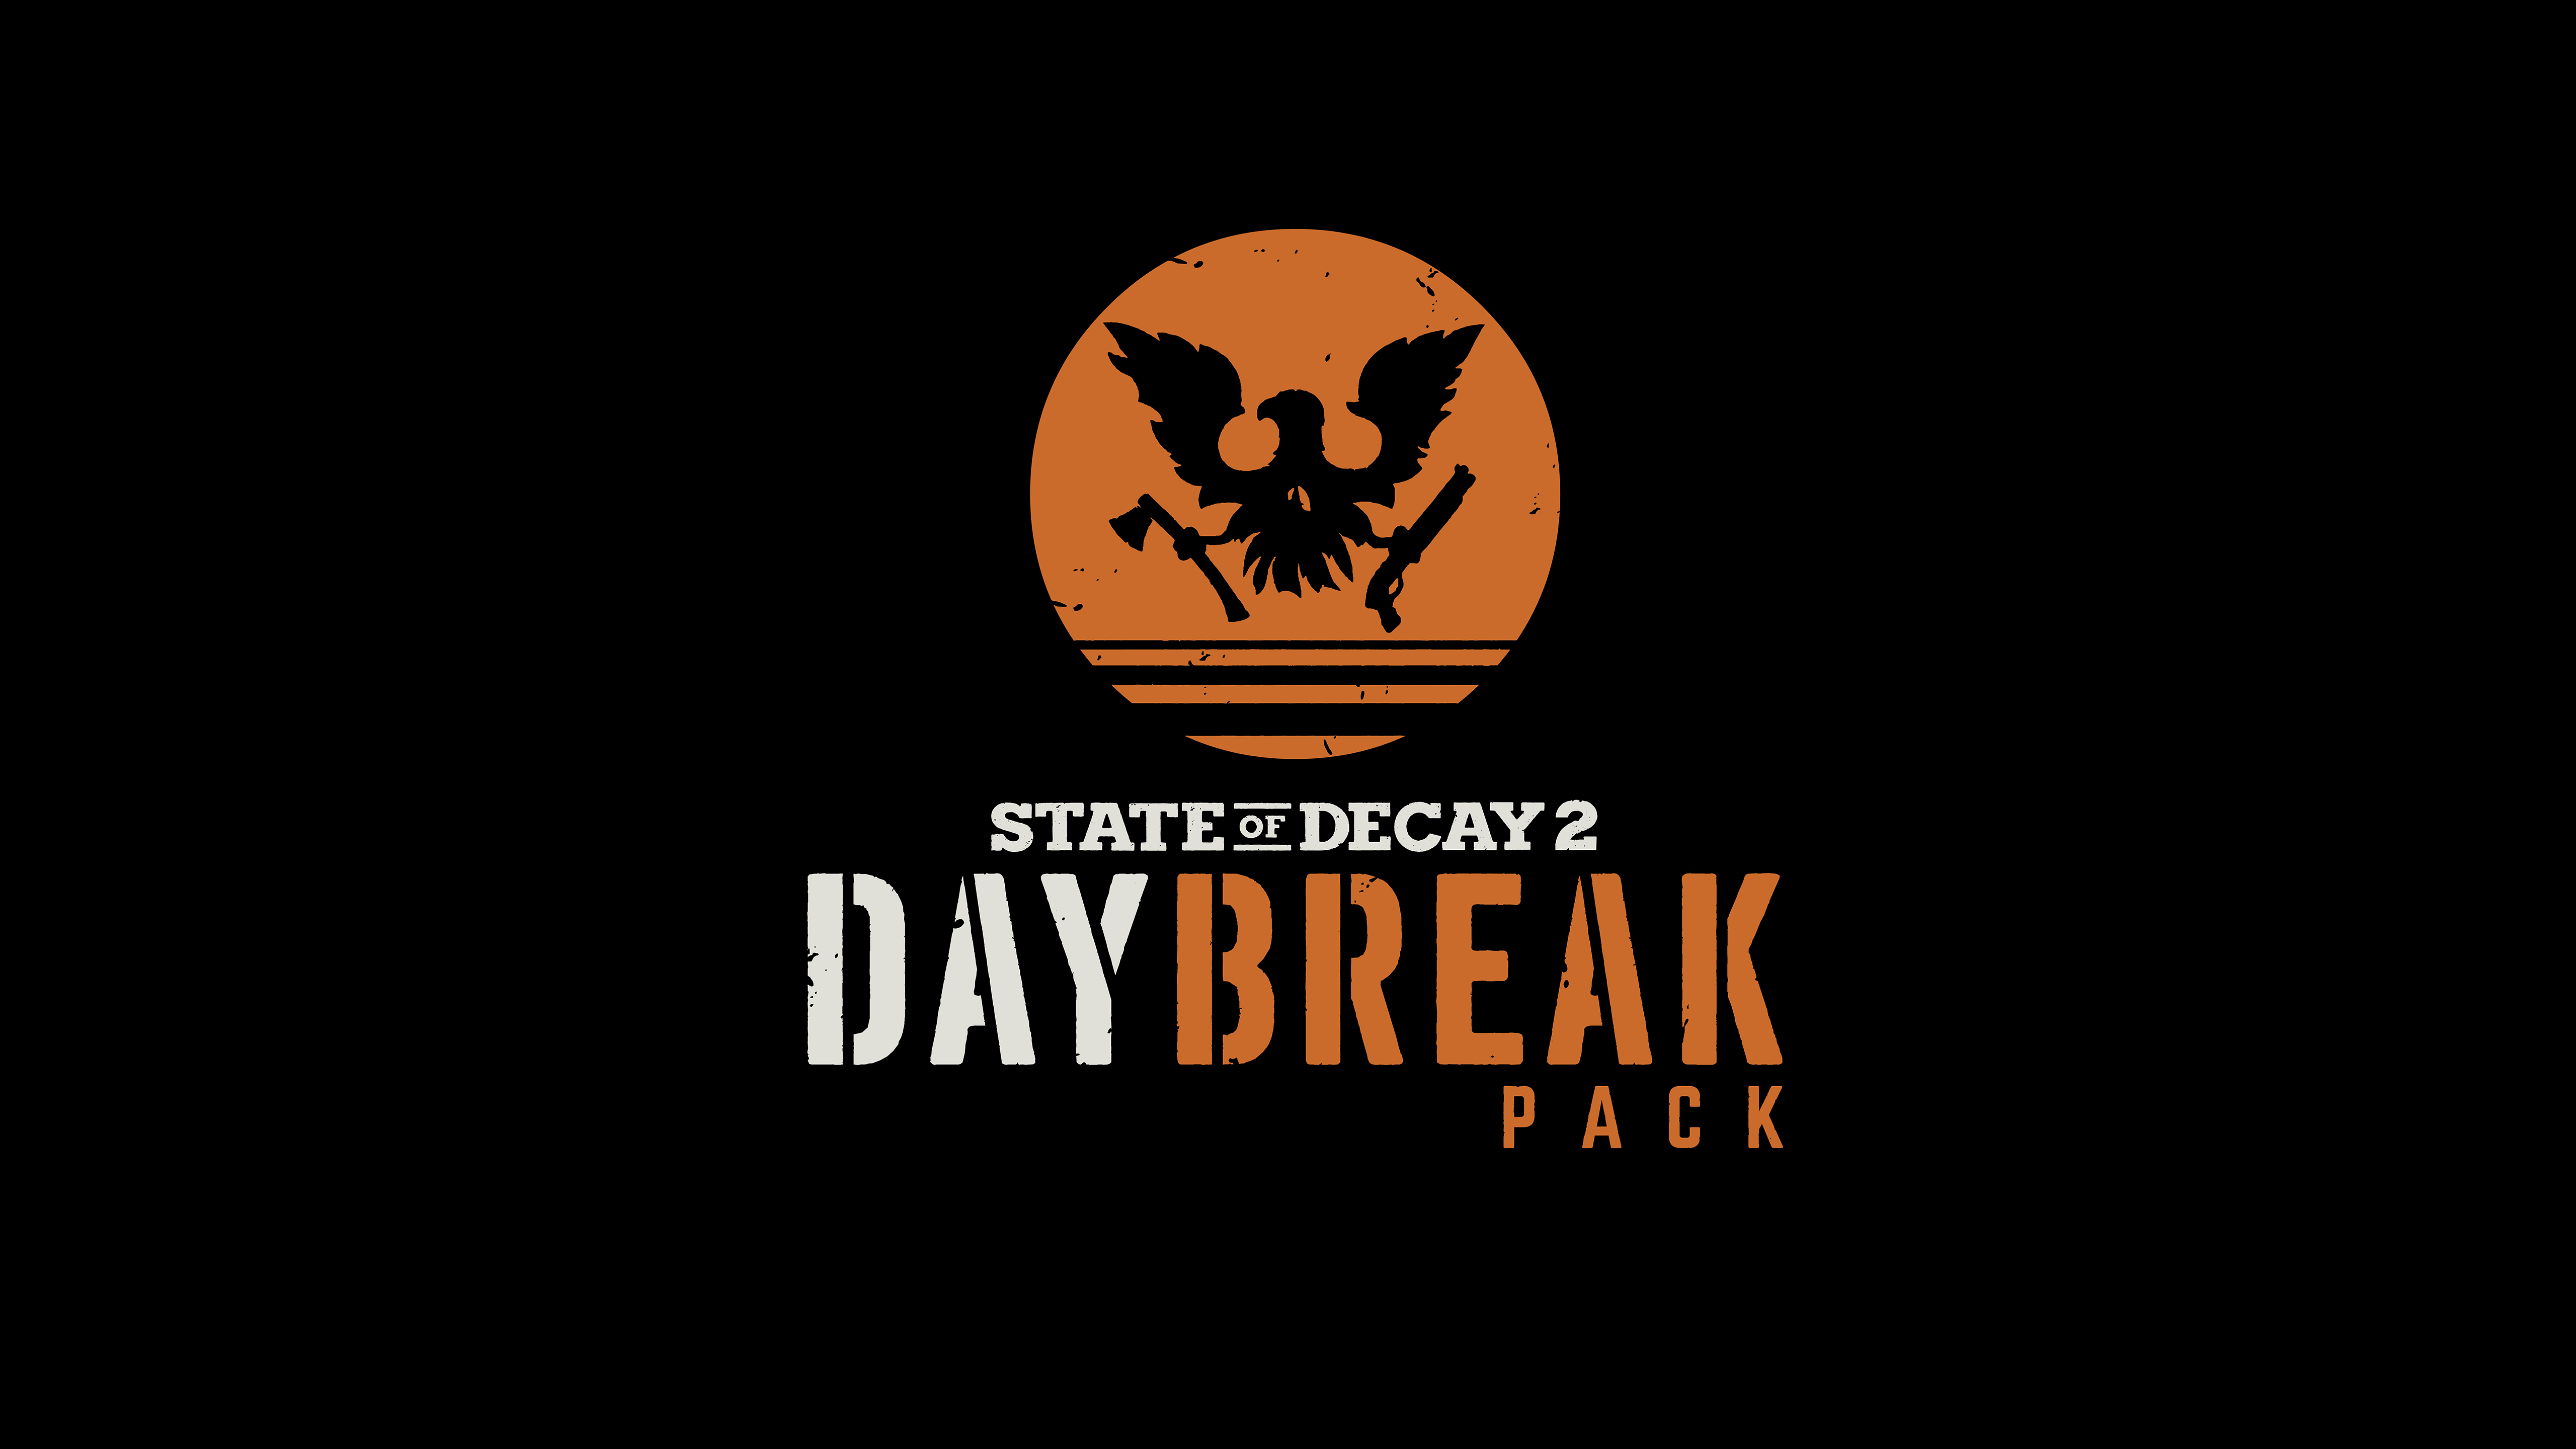 State Of Decay 2 Daybreak Pack 5k Hd Games 4k Wallpapers Images